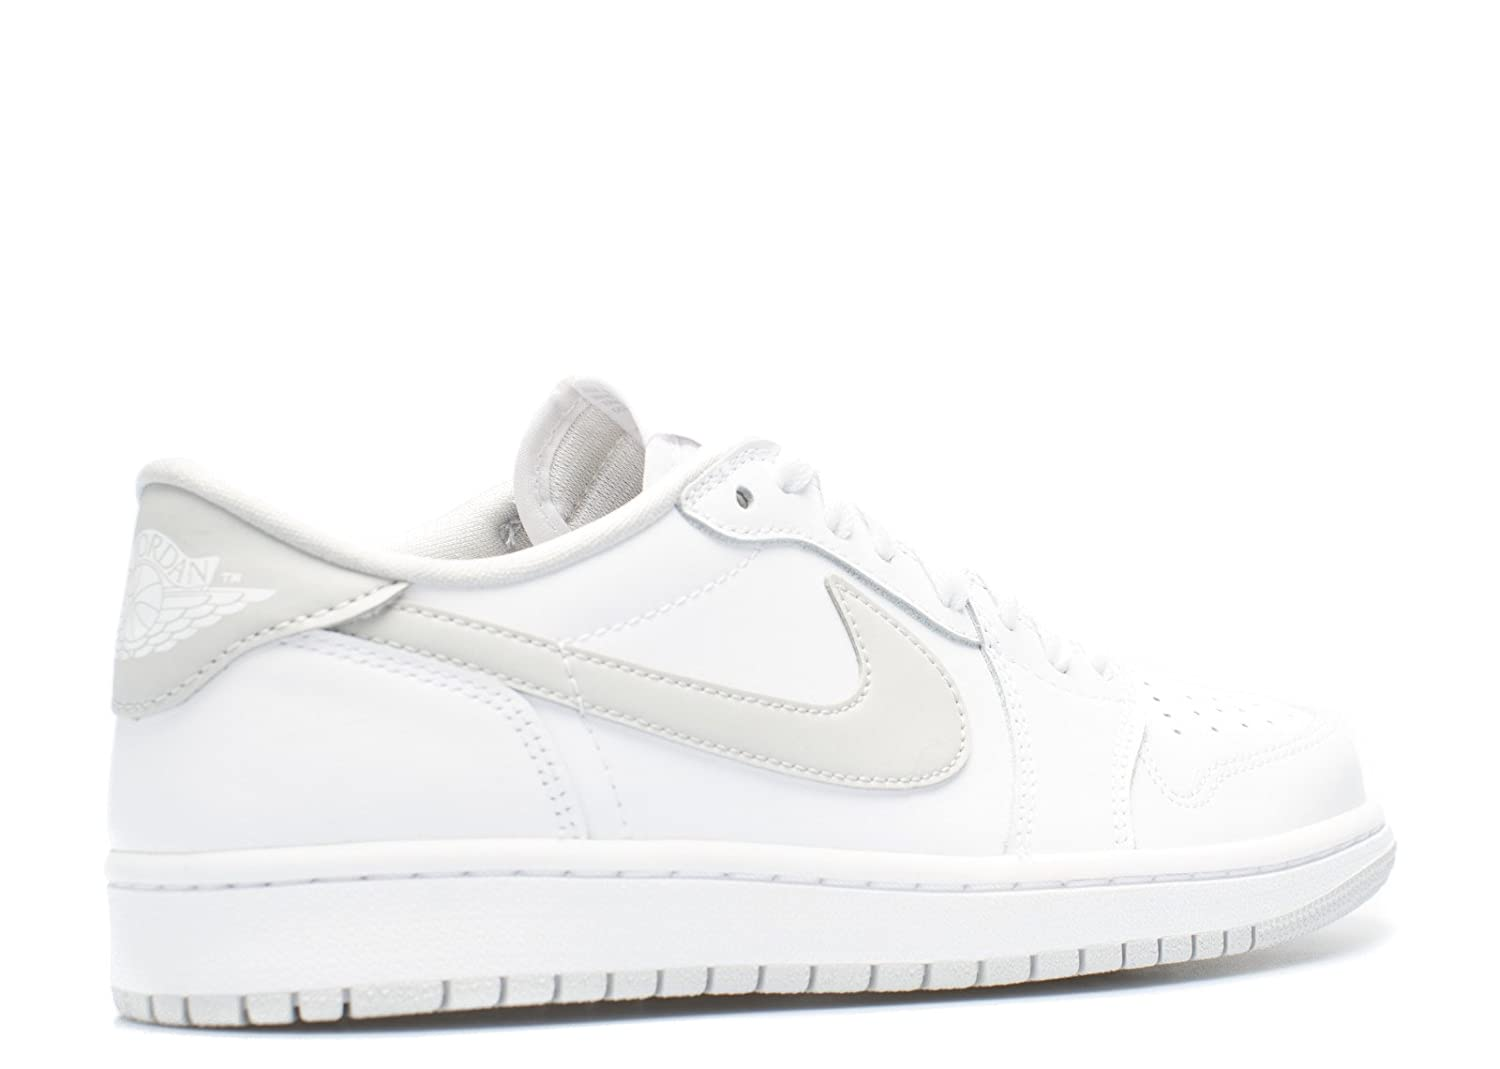 outlet store 299cd 22a5d Amazon.com  Air Jordan 1 Retro Low OG 705329 100 WhiteGrey  Basketball